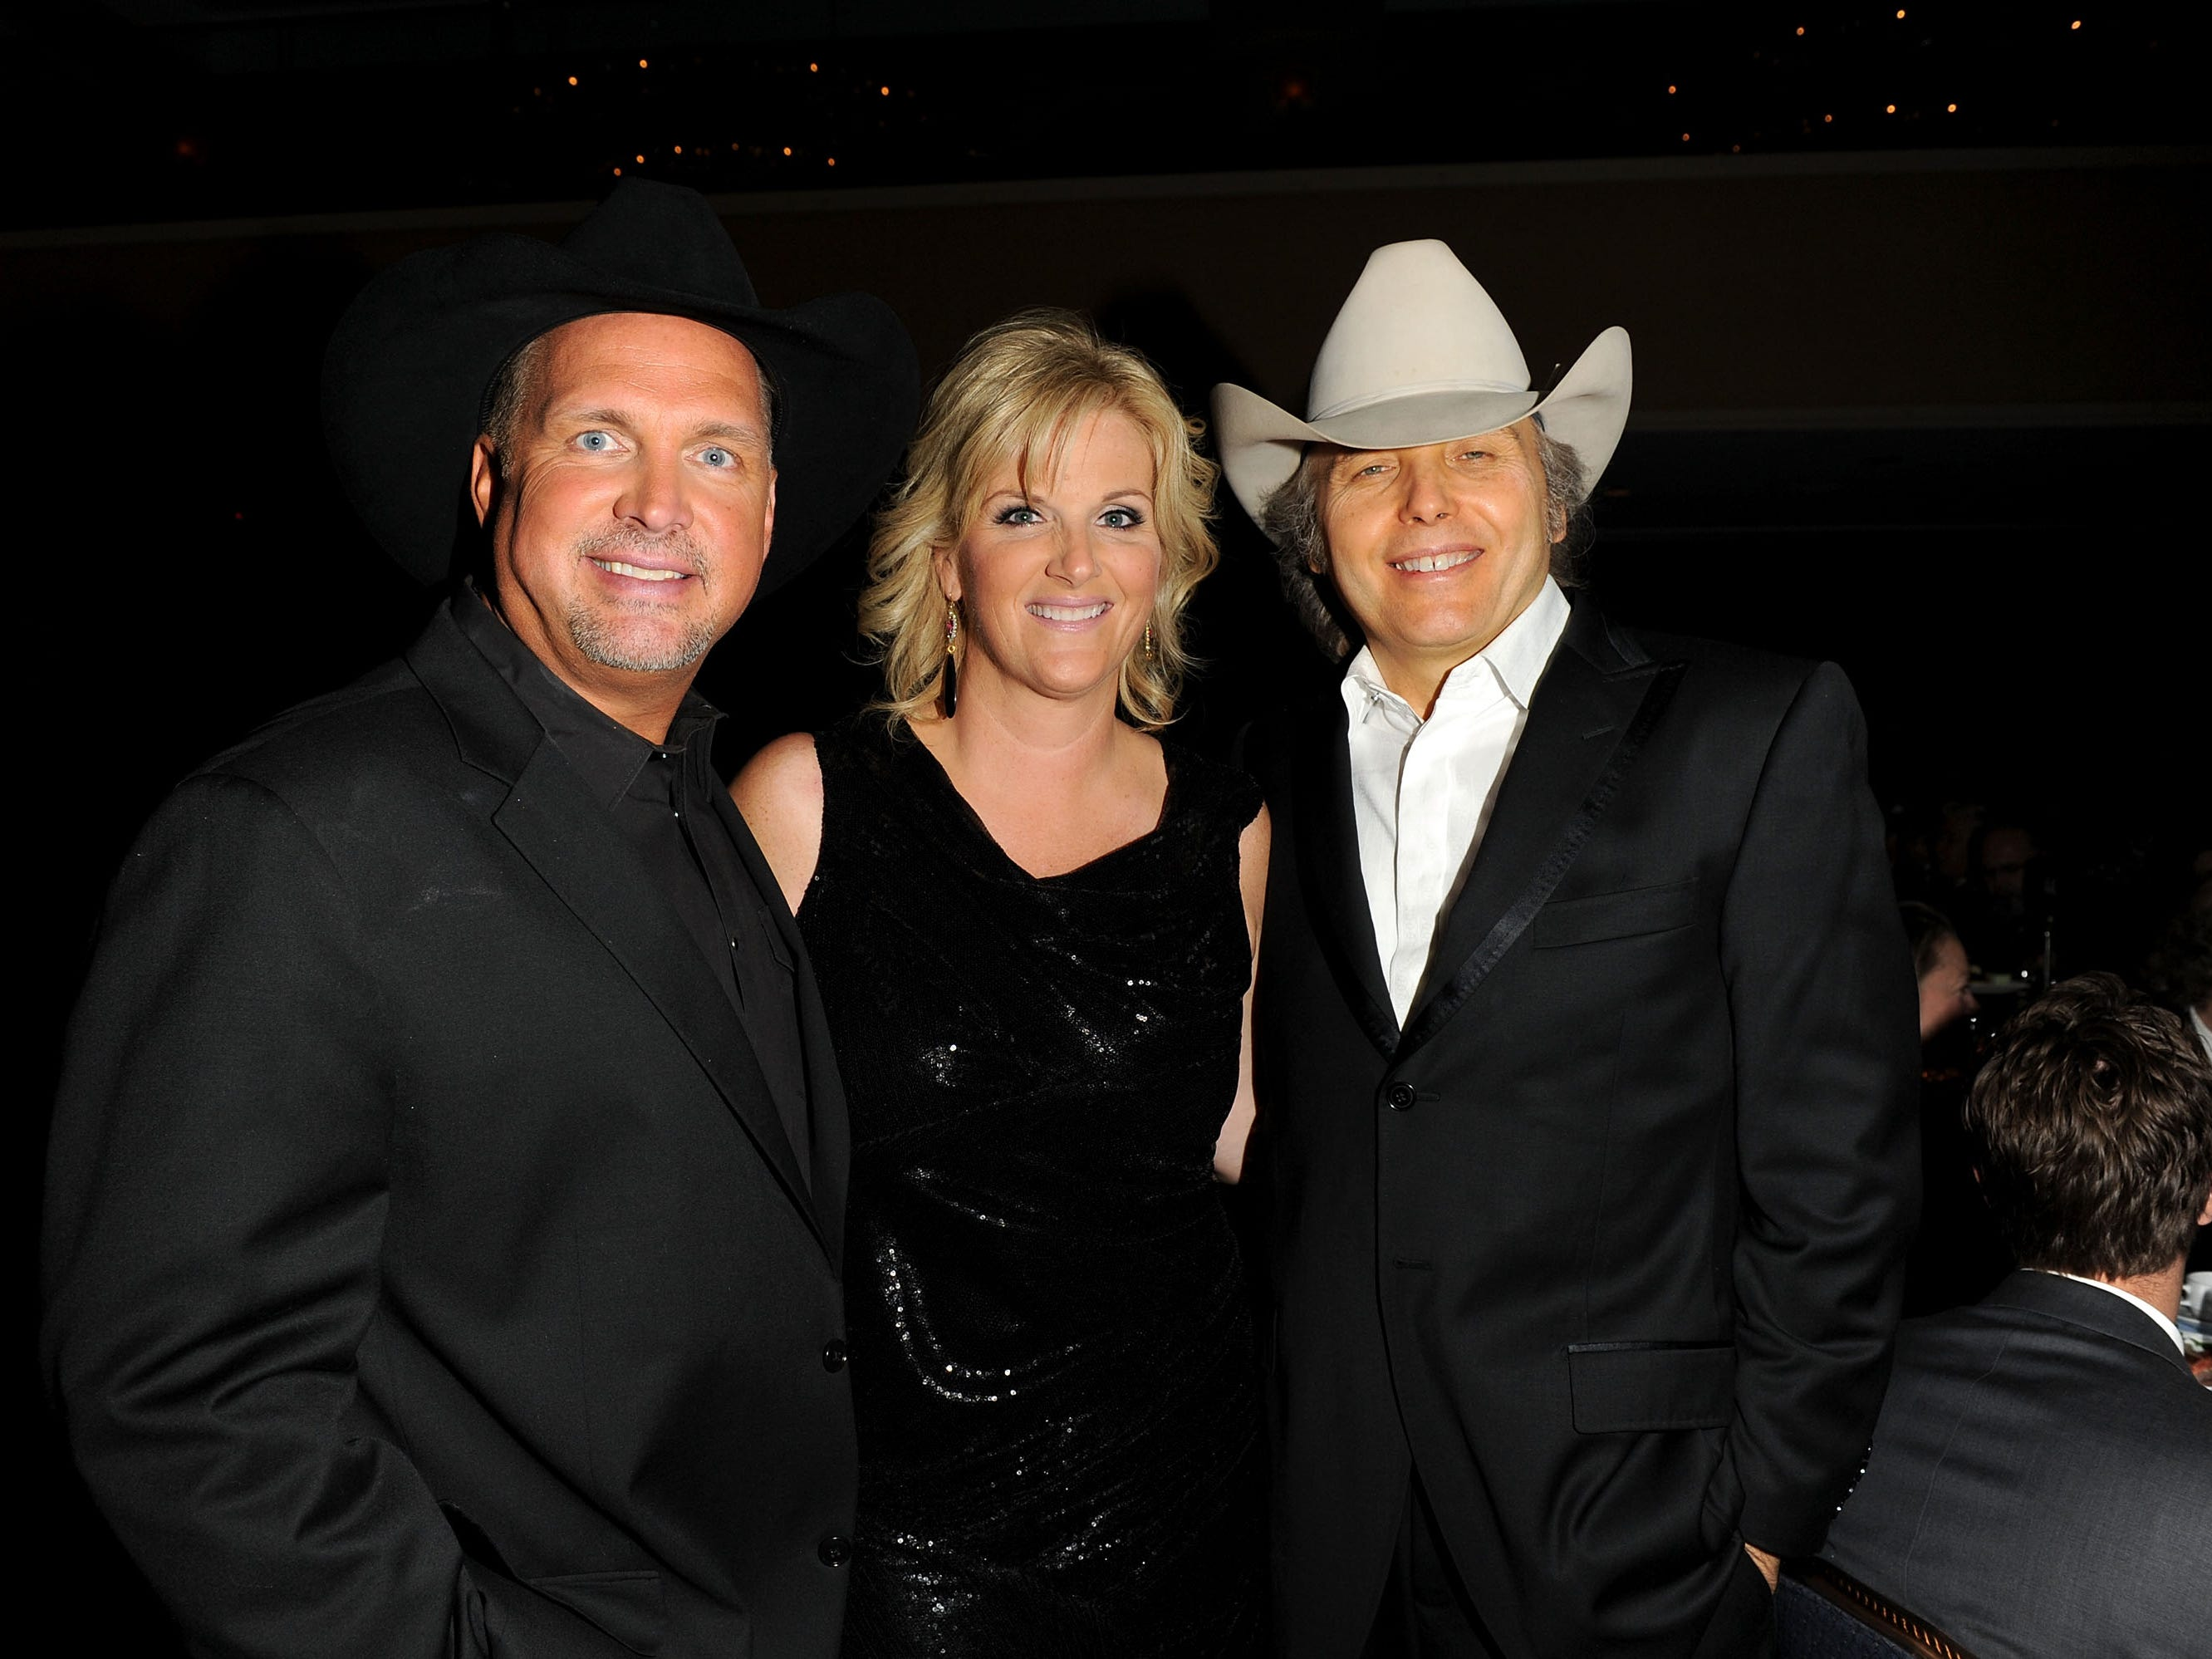 Trisha Yearwood, Garth Brooks and Dwight Yoakam attend the Songwriters Hall of Fame 42nd Annual Induction and Awards at The New York Marriott Marquis Hotel - Shubert Alley on June 16, 2011 in New York City.